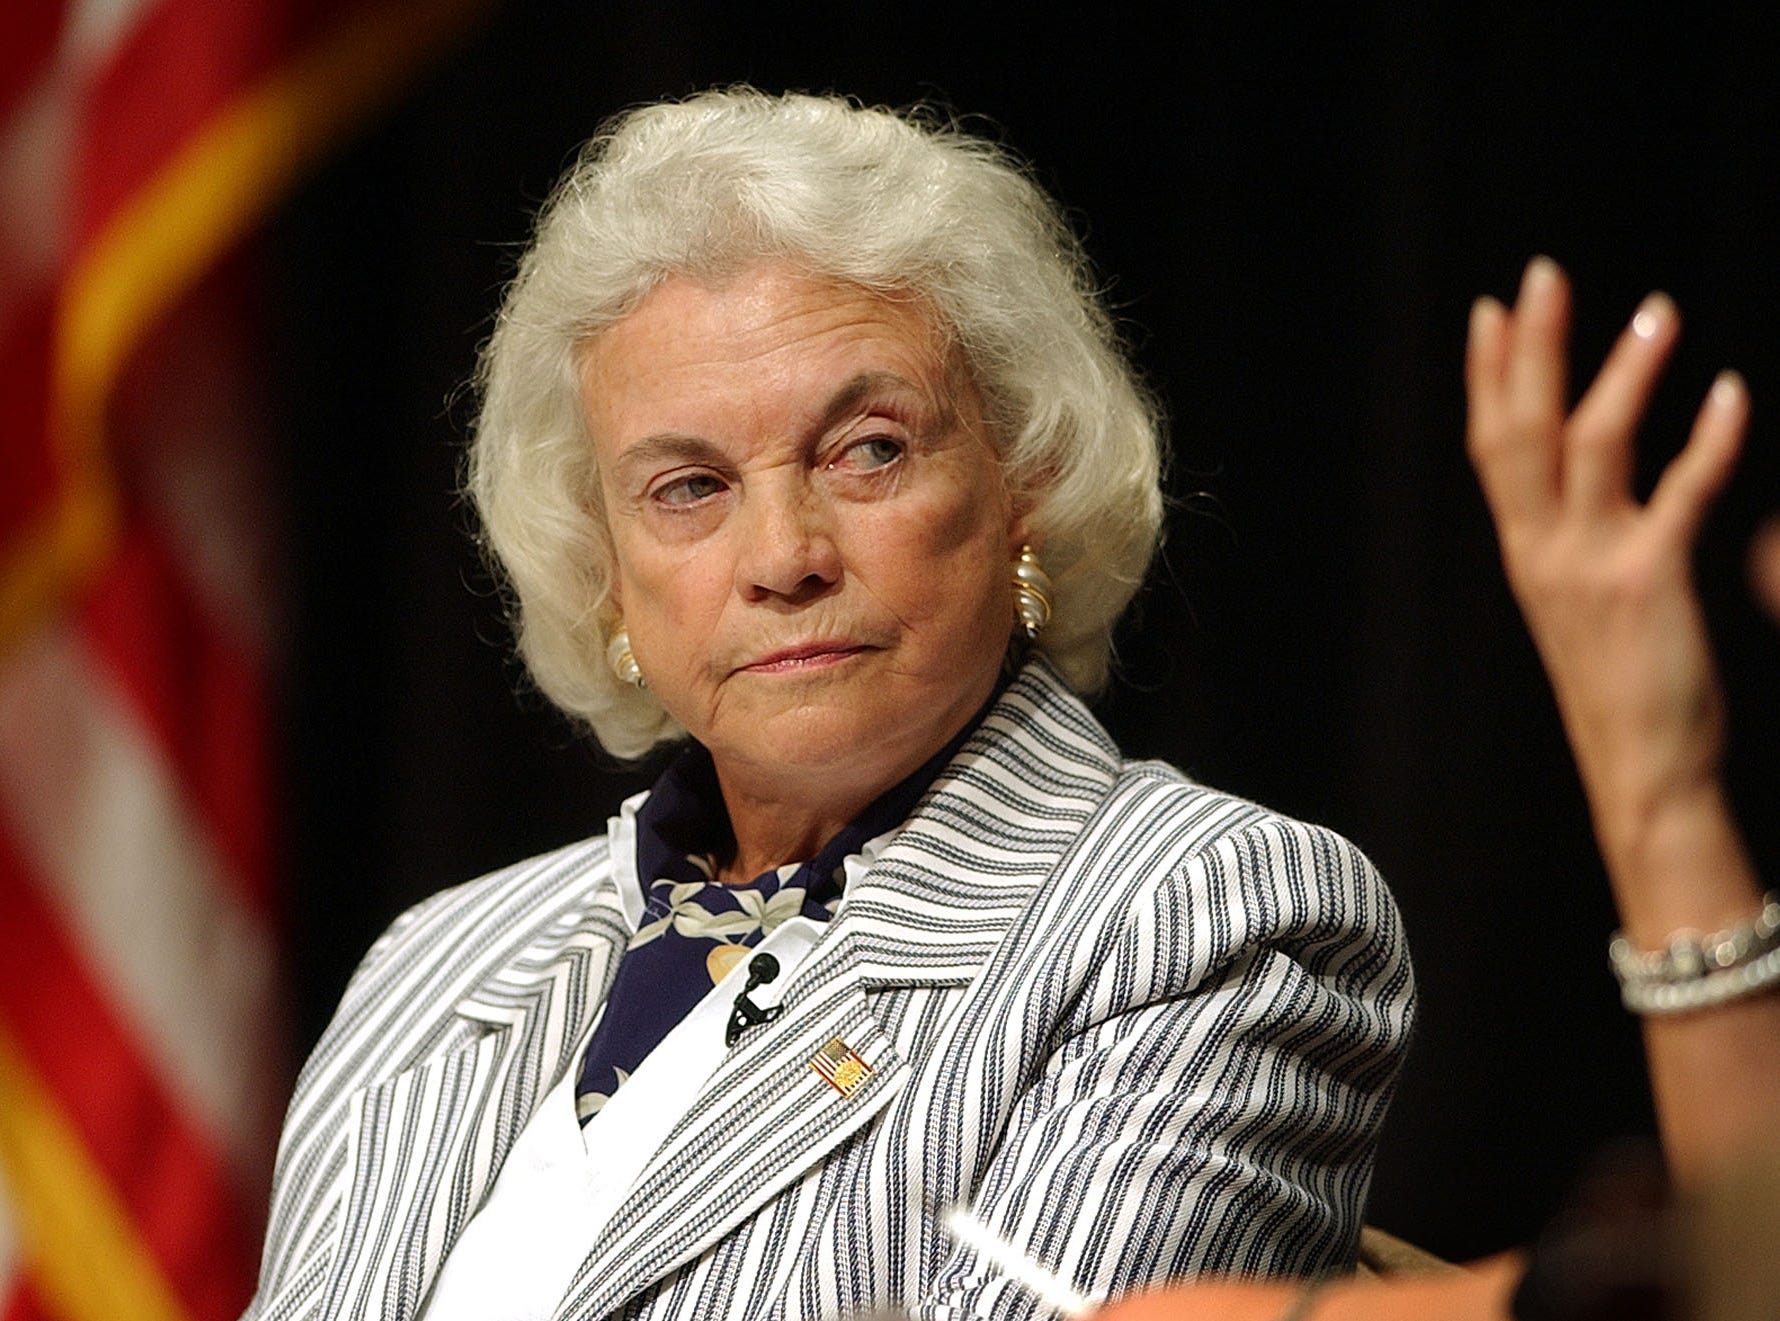 Associate Justice of the U.S. Supreme Court Sandra Day O'Connor listens during the 2004 9th Circuit Judicial Conference Thursday, July 22, 2004, in Monterey, Calif.